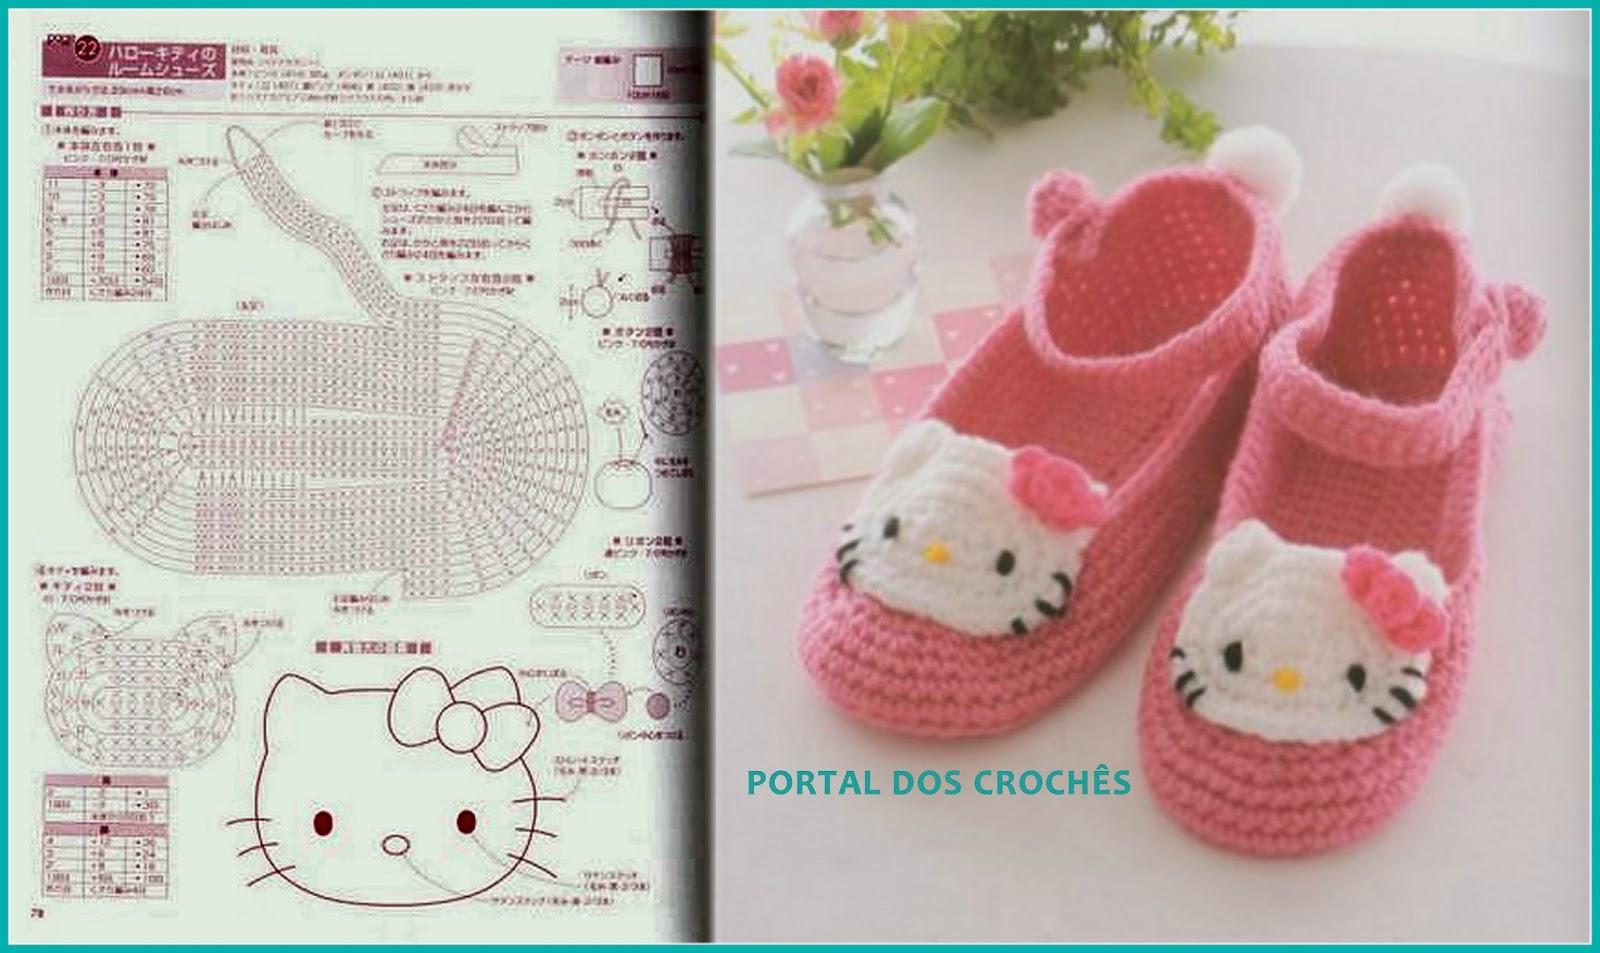 Hello Kitty Tapete Croche : DOS CROCH?S: SAPATINHO, LUVA E CACHECOL DE CROCH? COM A HELLO KITTY